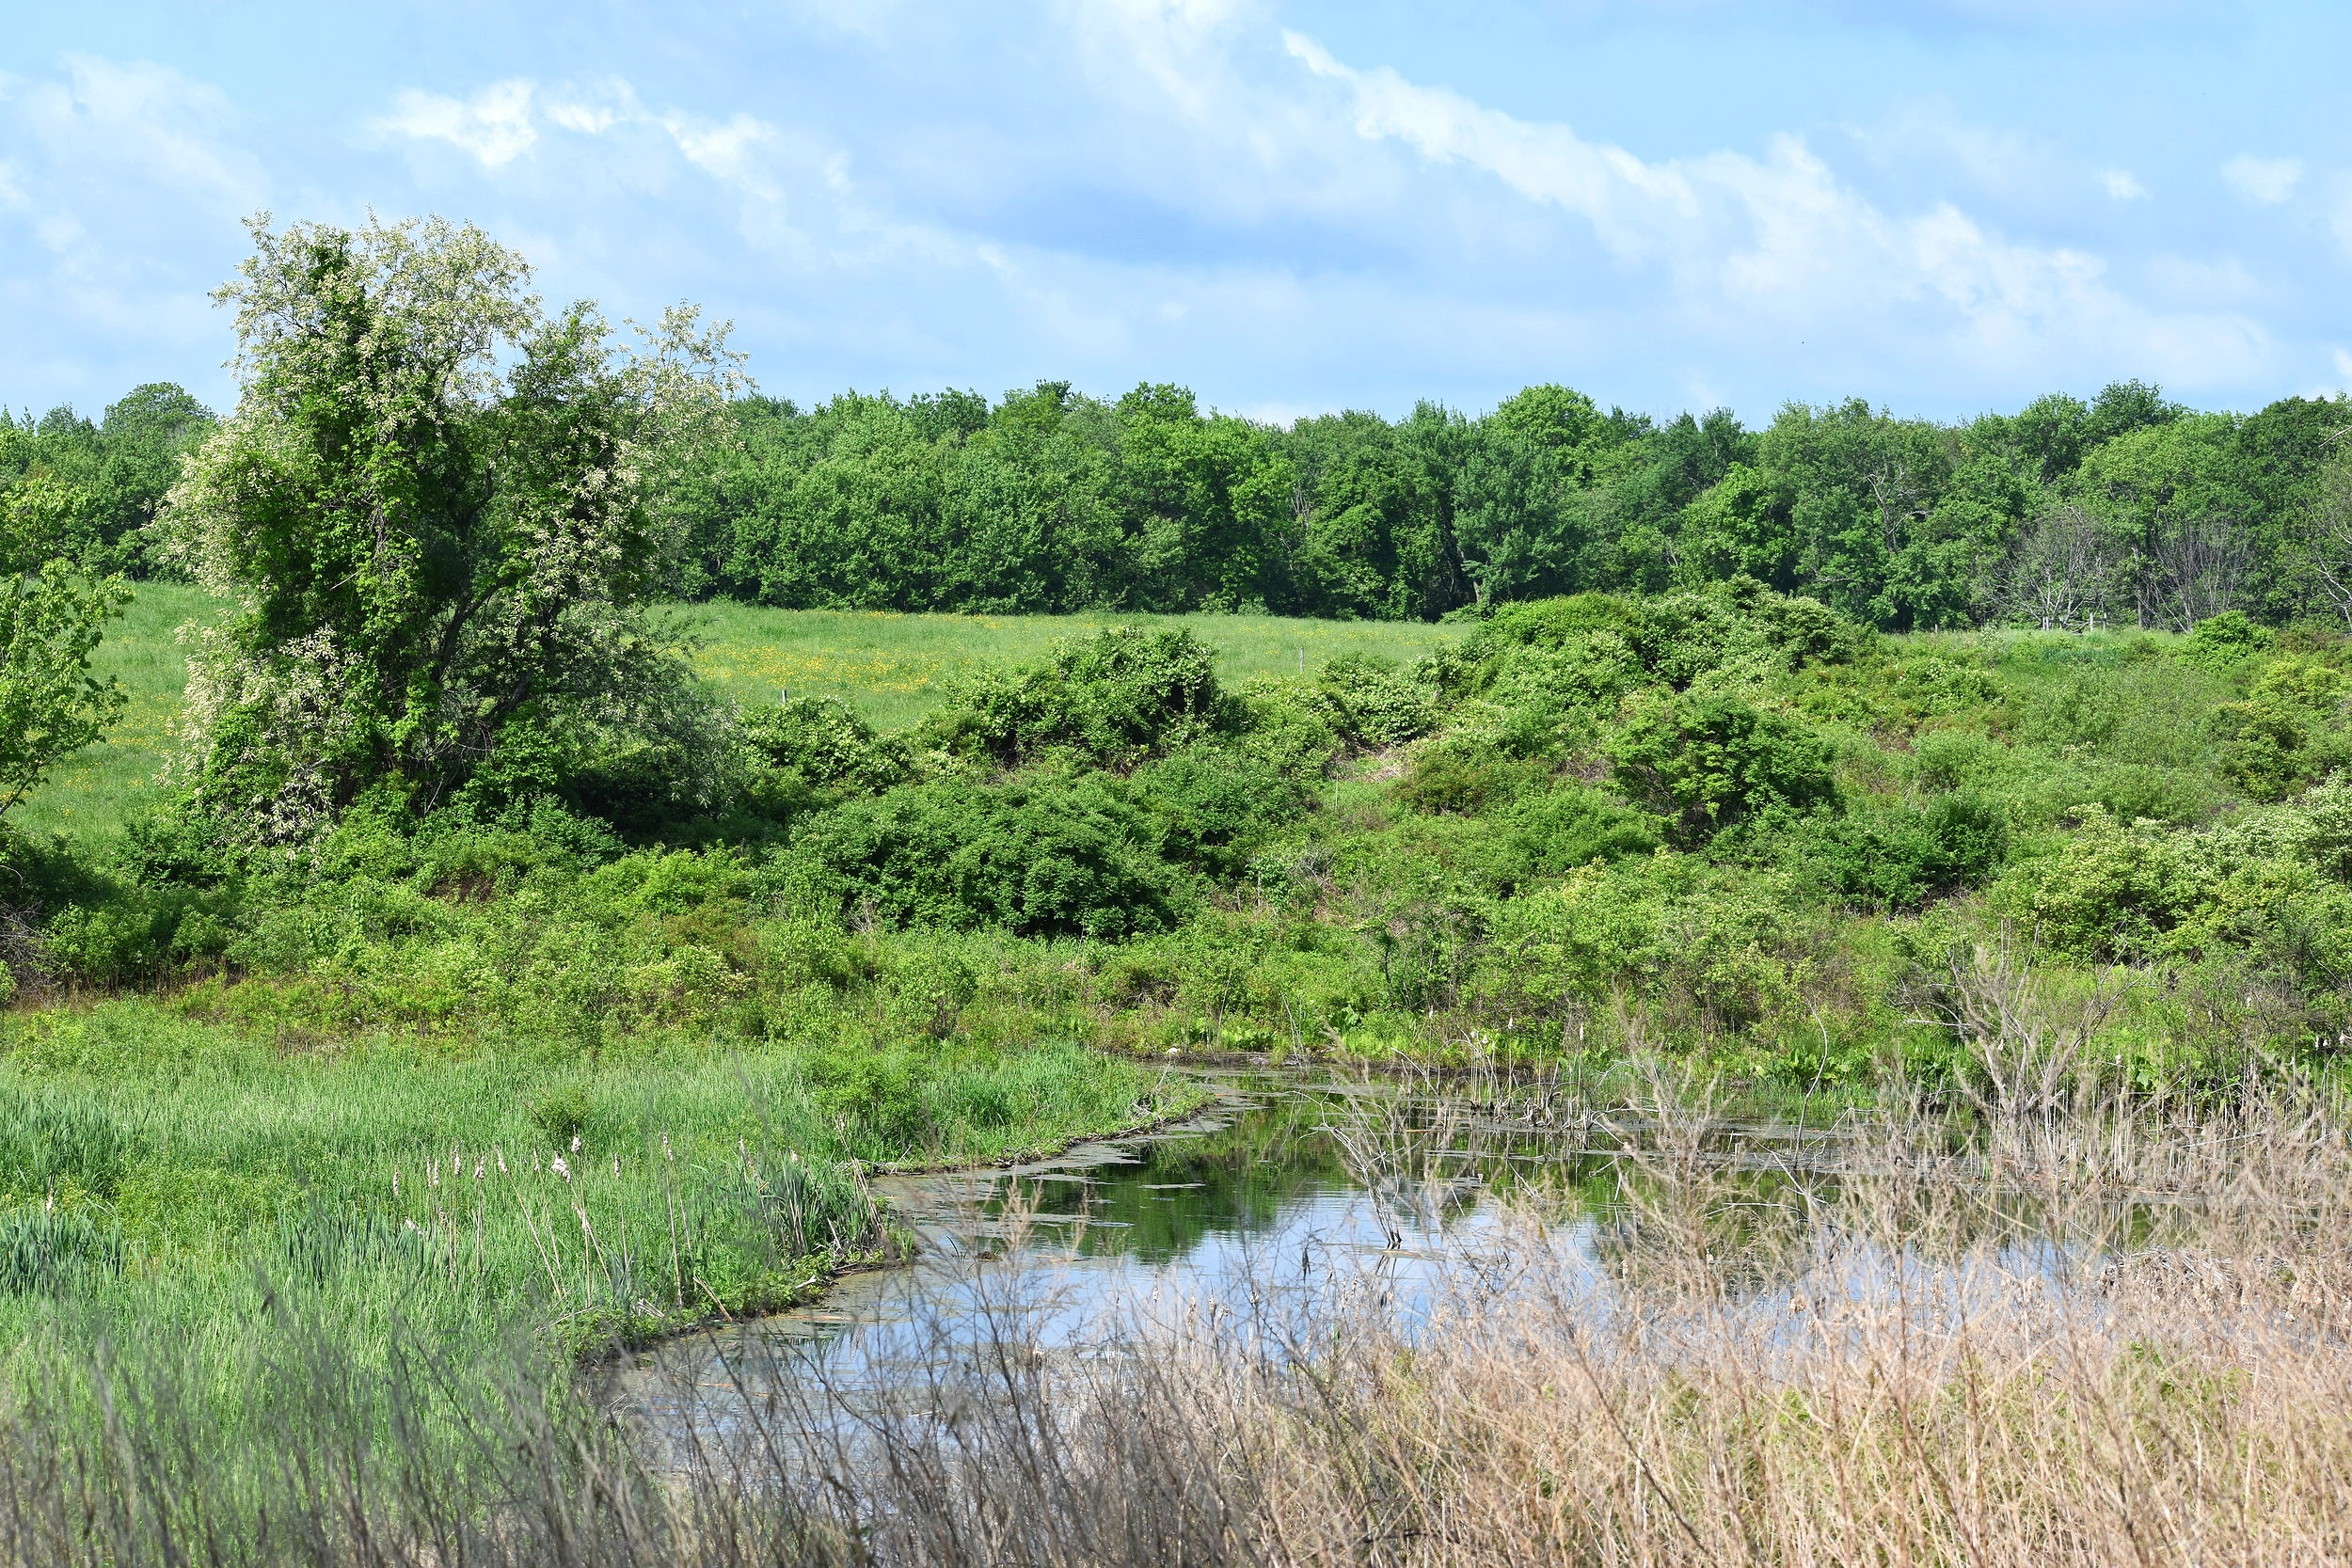 Another example of Golden Winged Warbler habitat - shrubby, relatively open area in close proximity to forest habitat